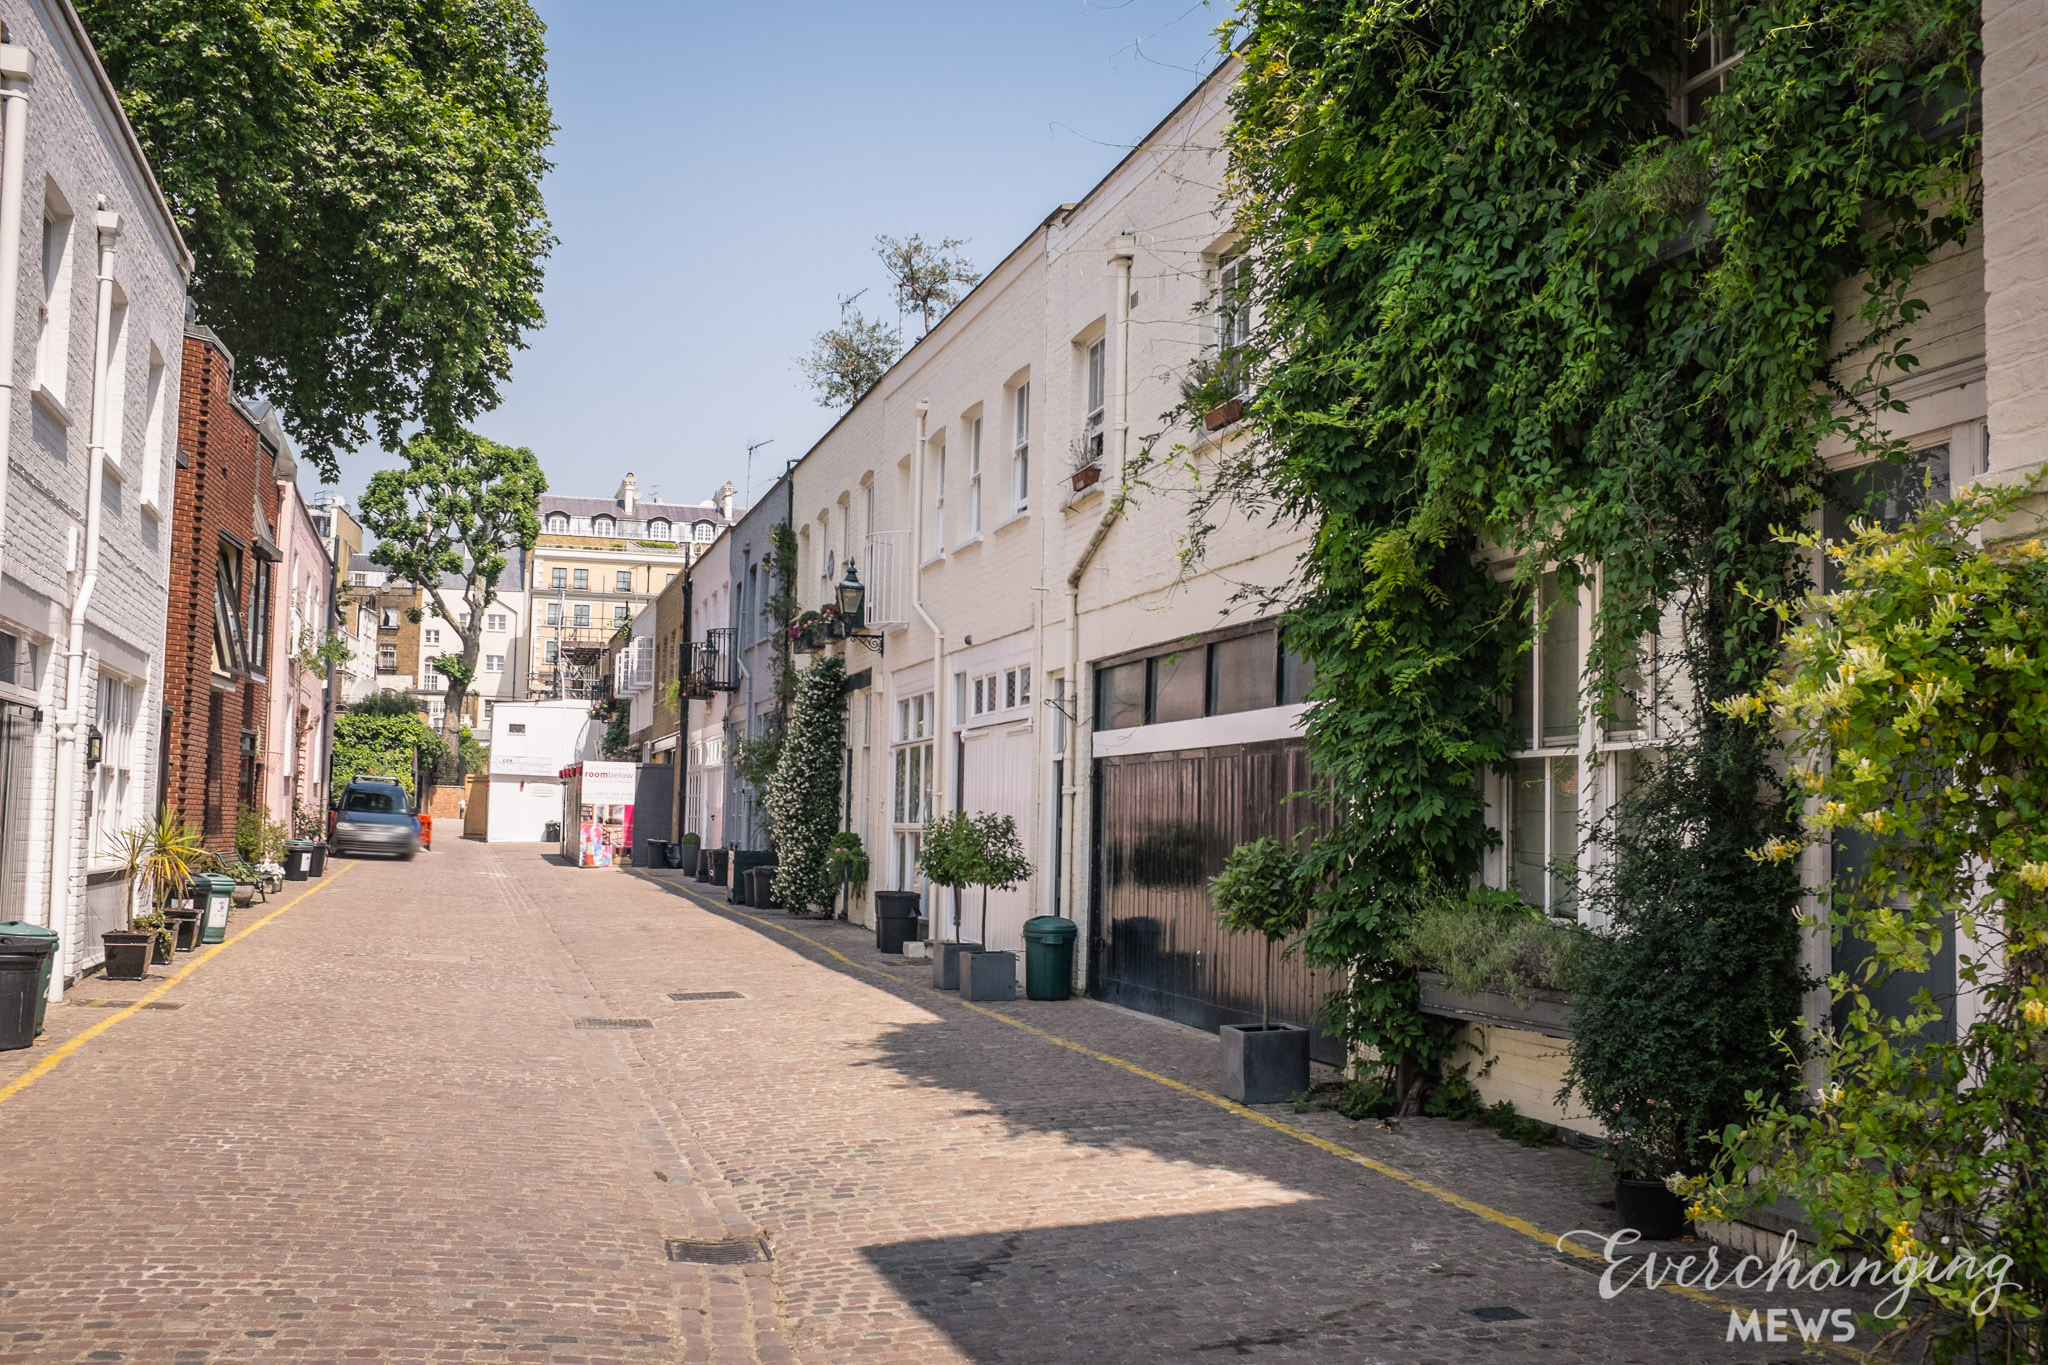 Queen 39 s gate mews everchanging mews for Queens gate terrace